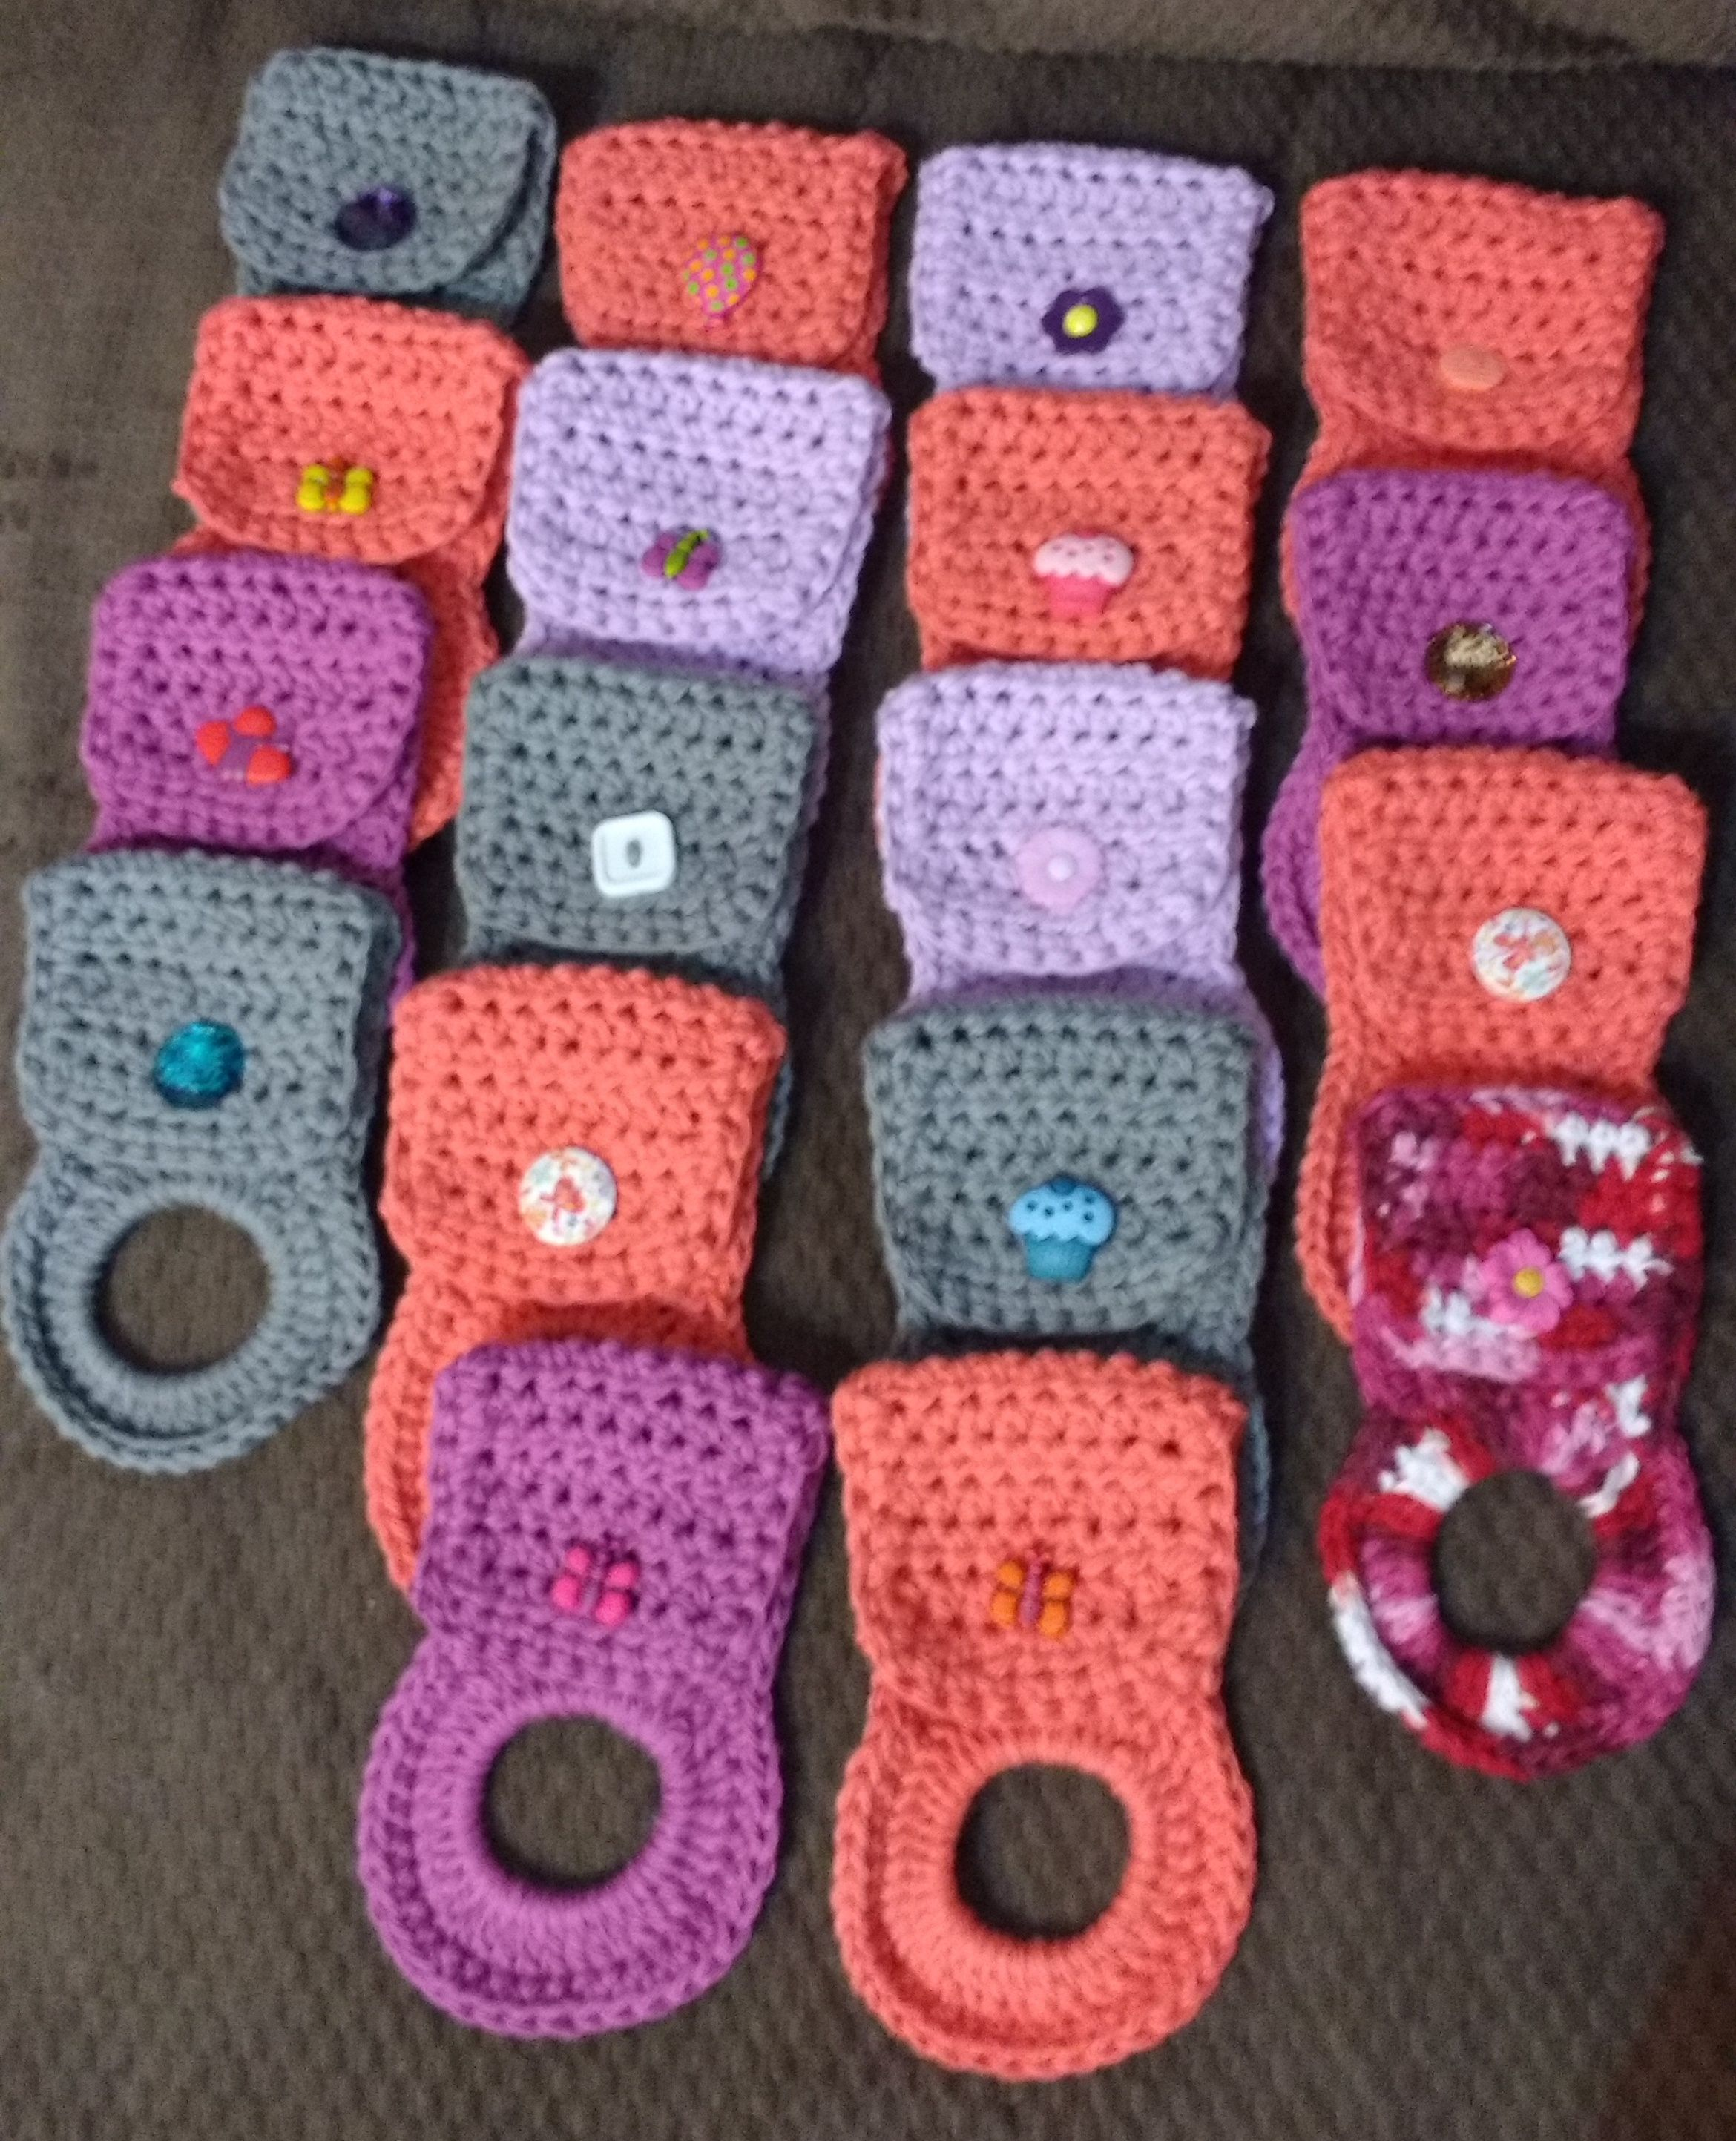 Crochet Project: Towel Holders! I have crocheted many of these in ...